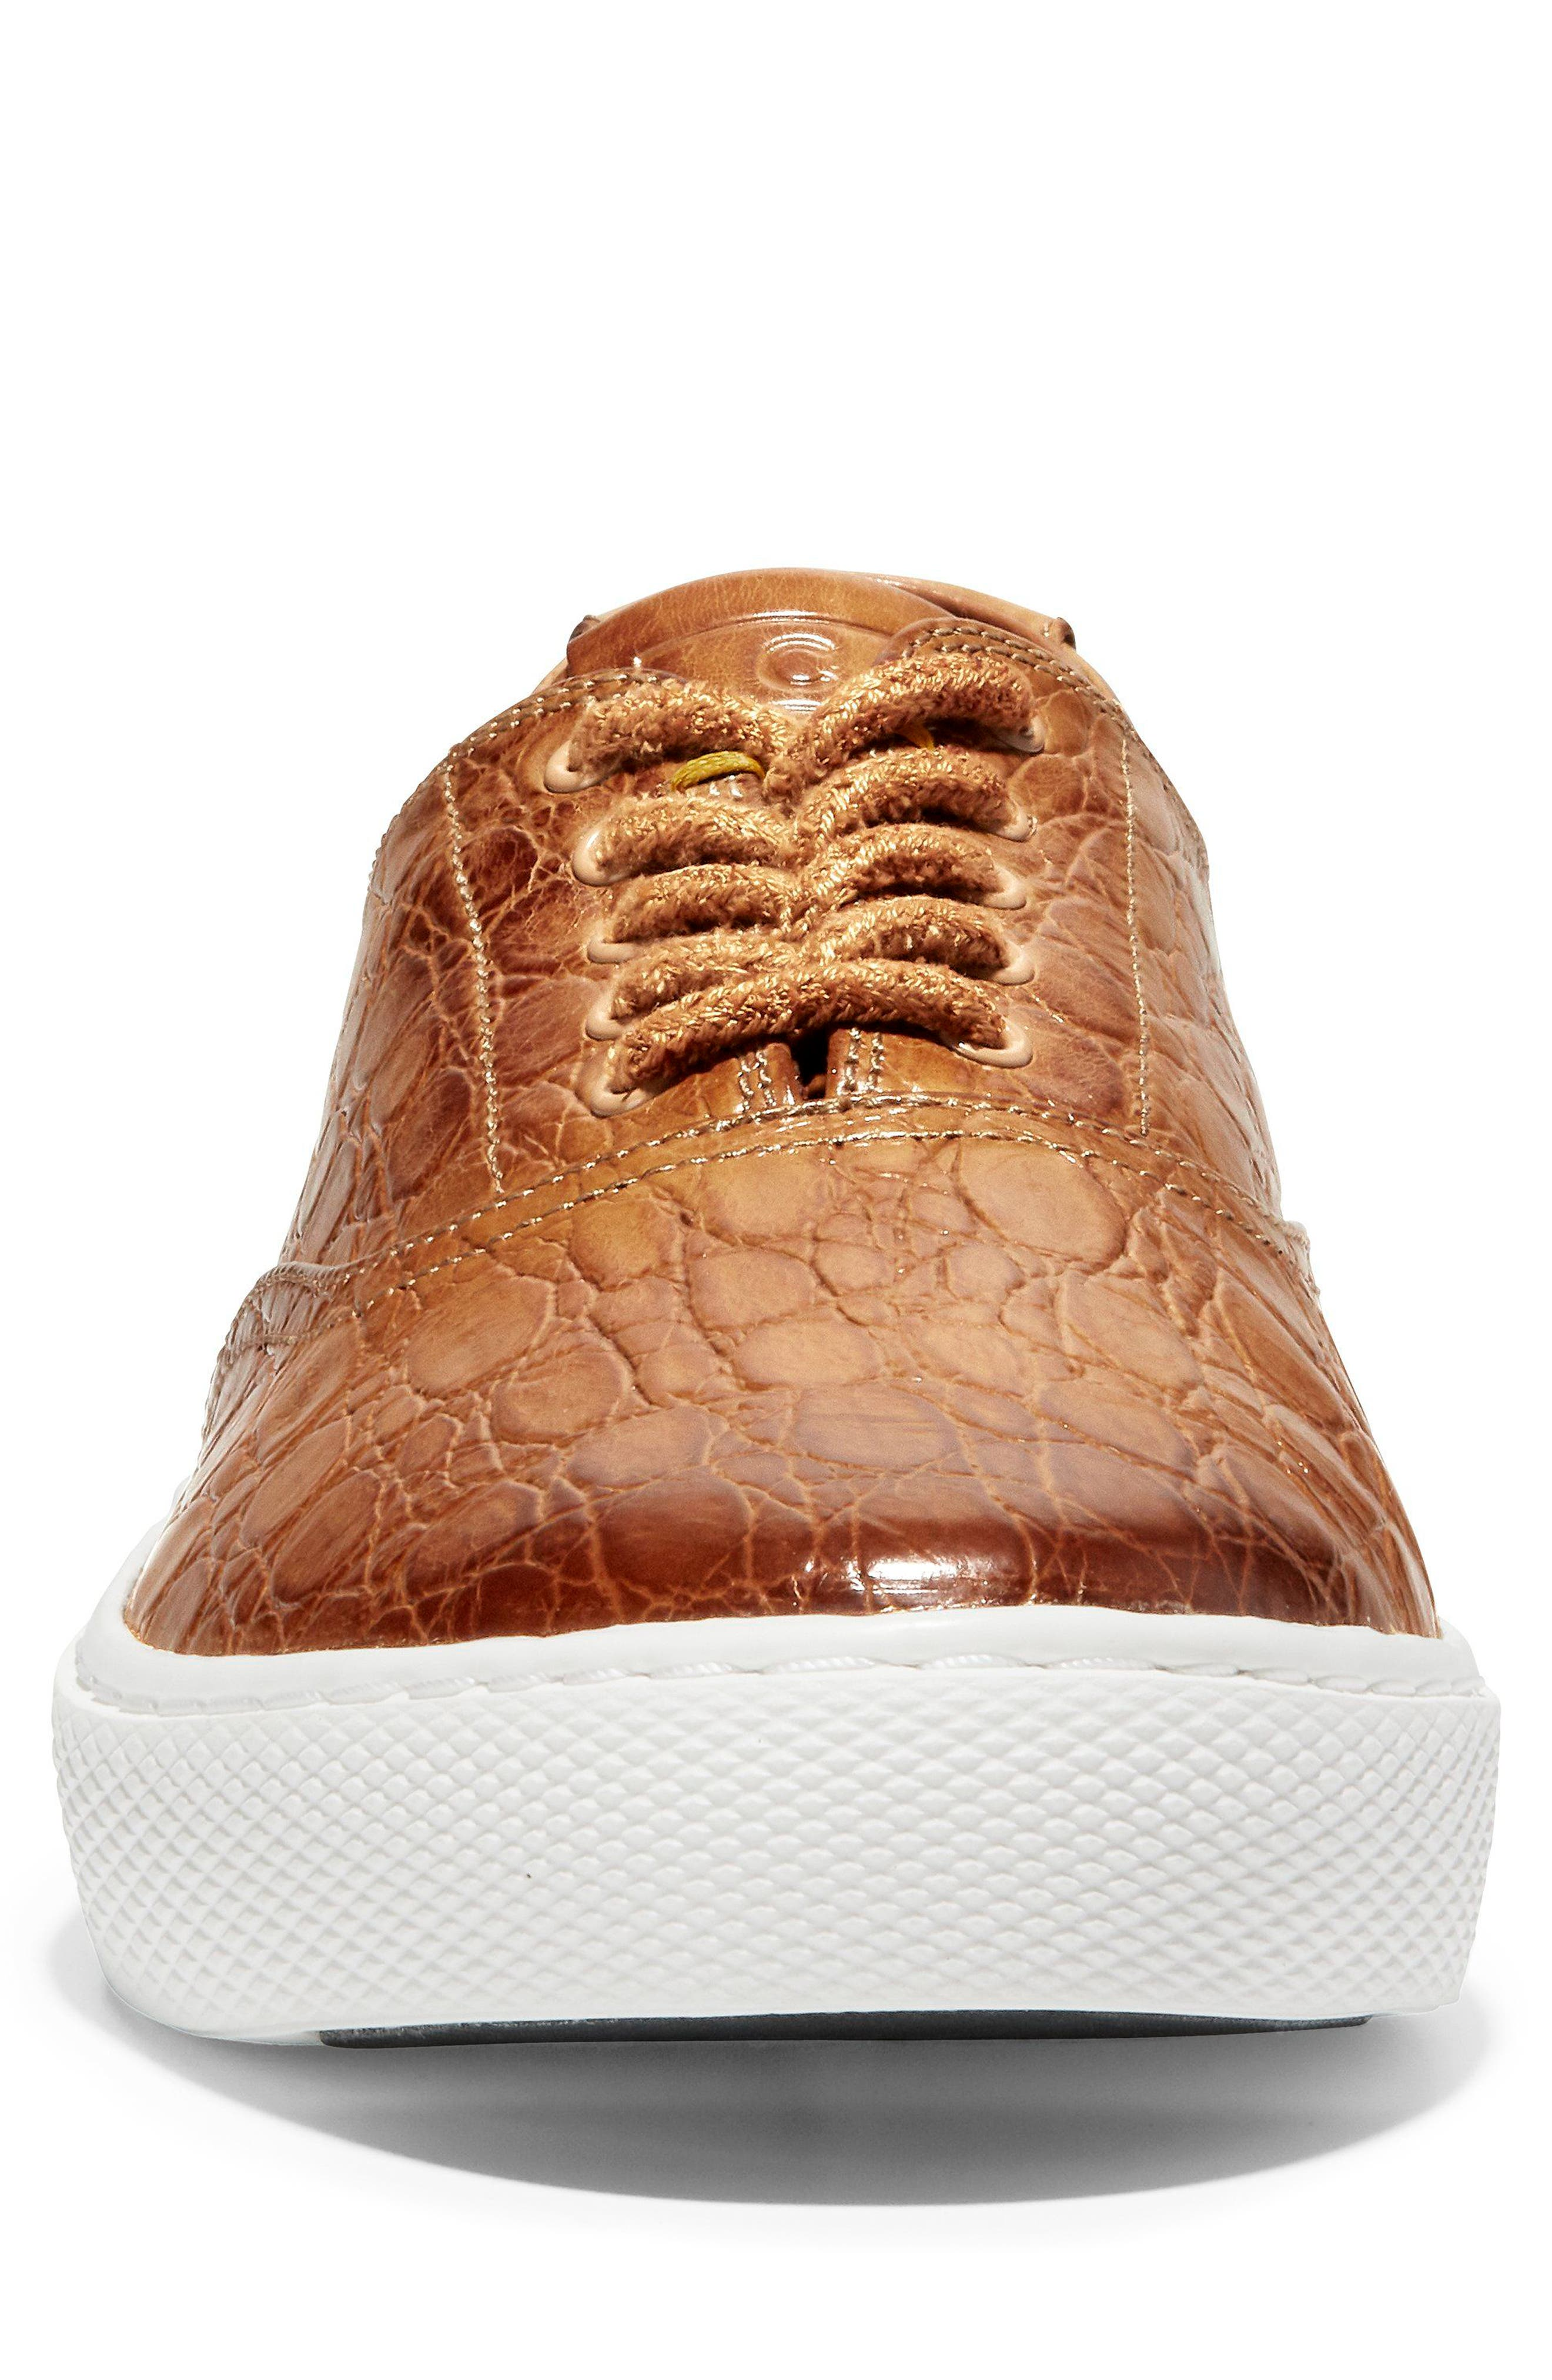 GrandPro Deck Low Top Sneaker,                             Alternate thumbnail 5, color,                             Brown/ White Leather